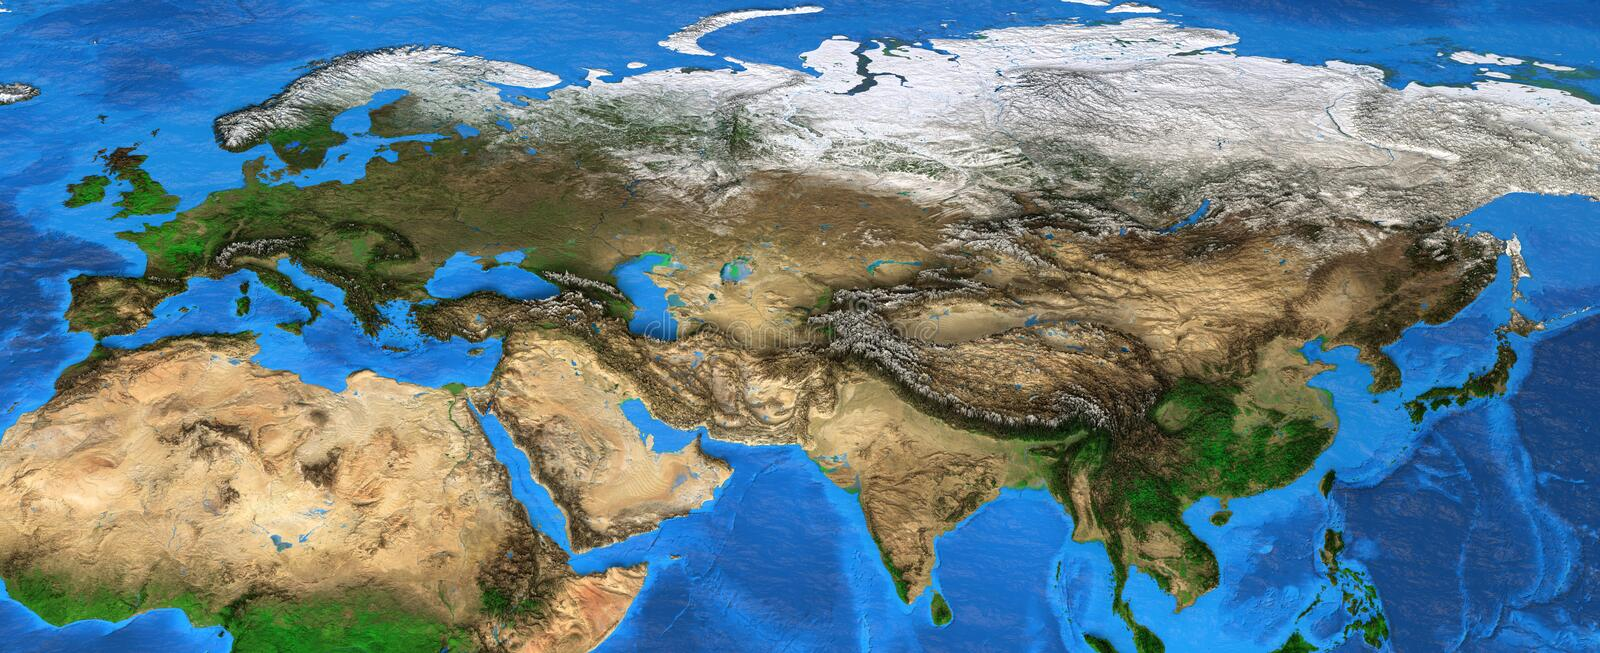 Eurasia - High resolution map of Europe and Asia. Map of Eurasia. Detailed satellite view of the Earth and its landforms, focused on Europe and Asia. Elements of royalty free stock photography